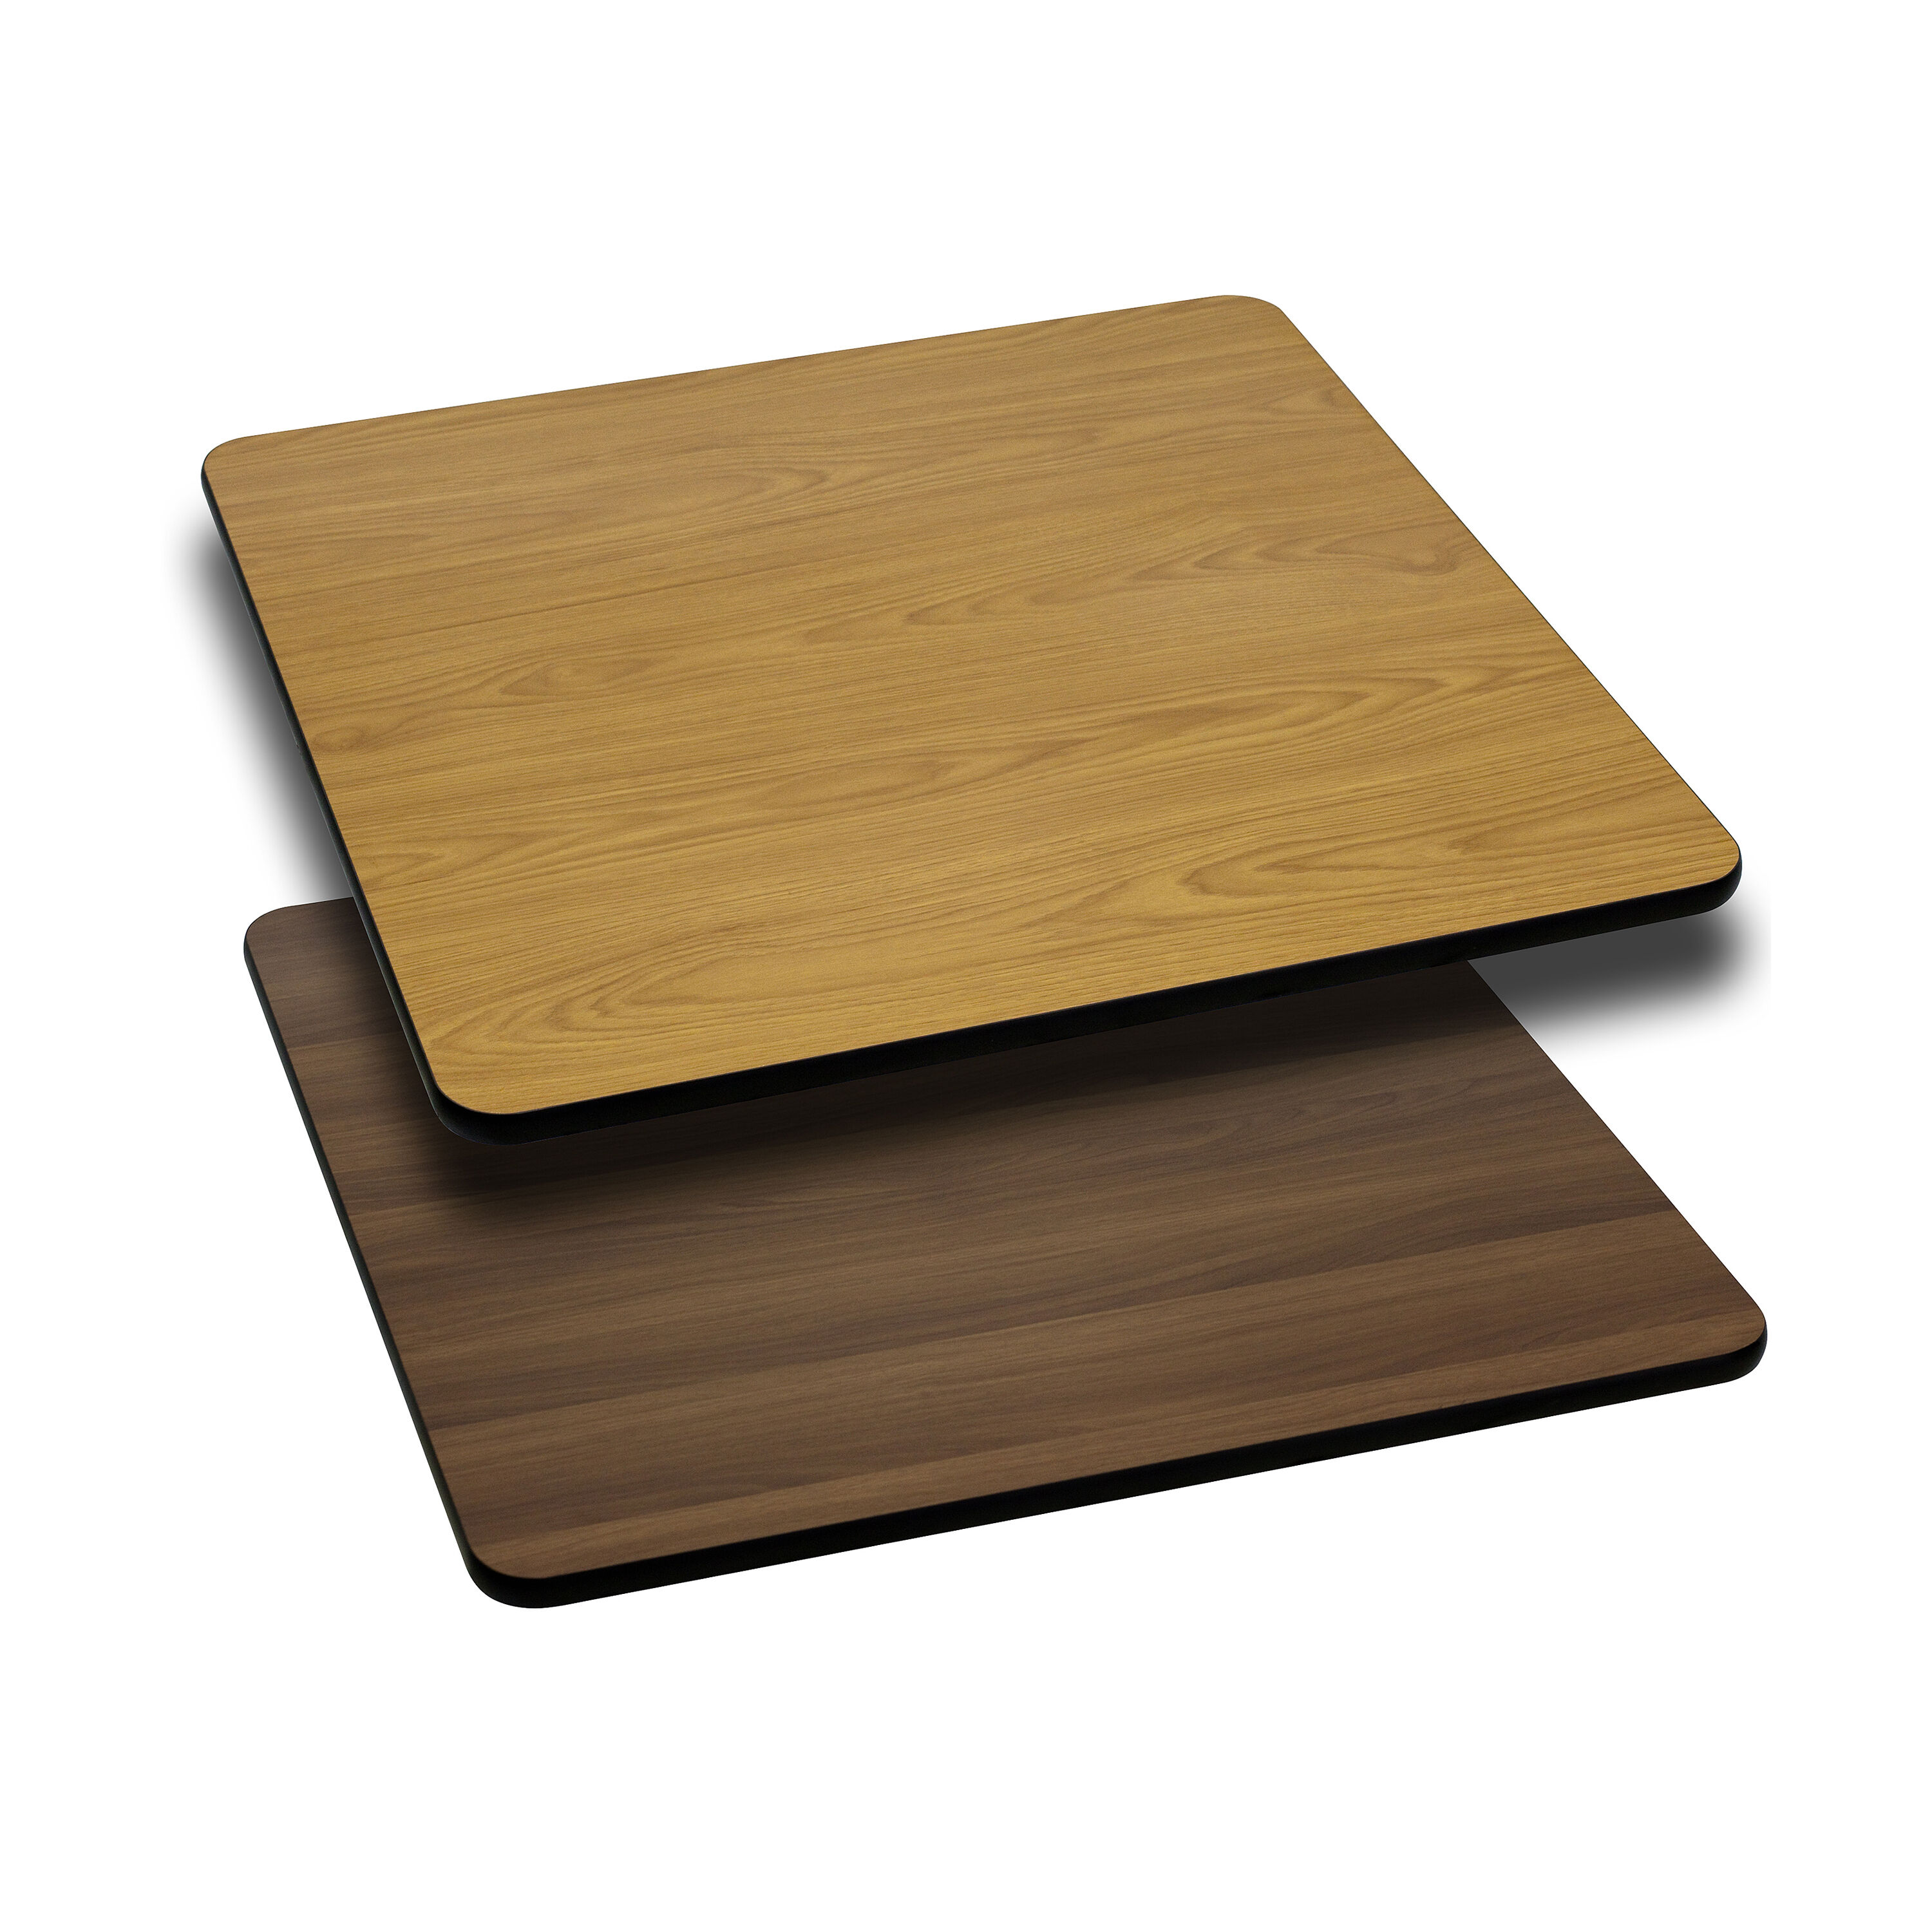 24u0027u0027 Square Table Top With Reversible Natural Or Walnut Laminate Top